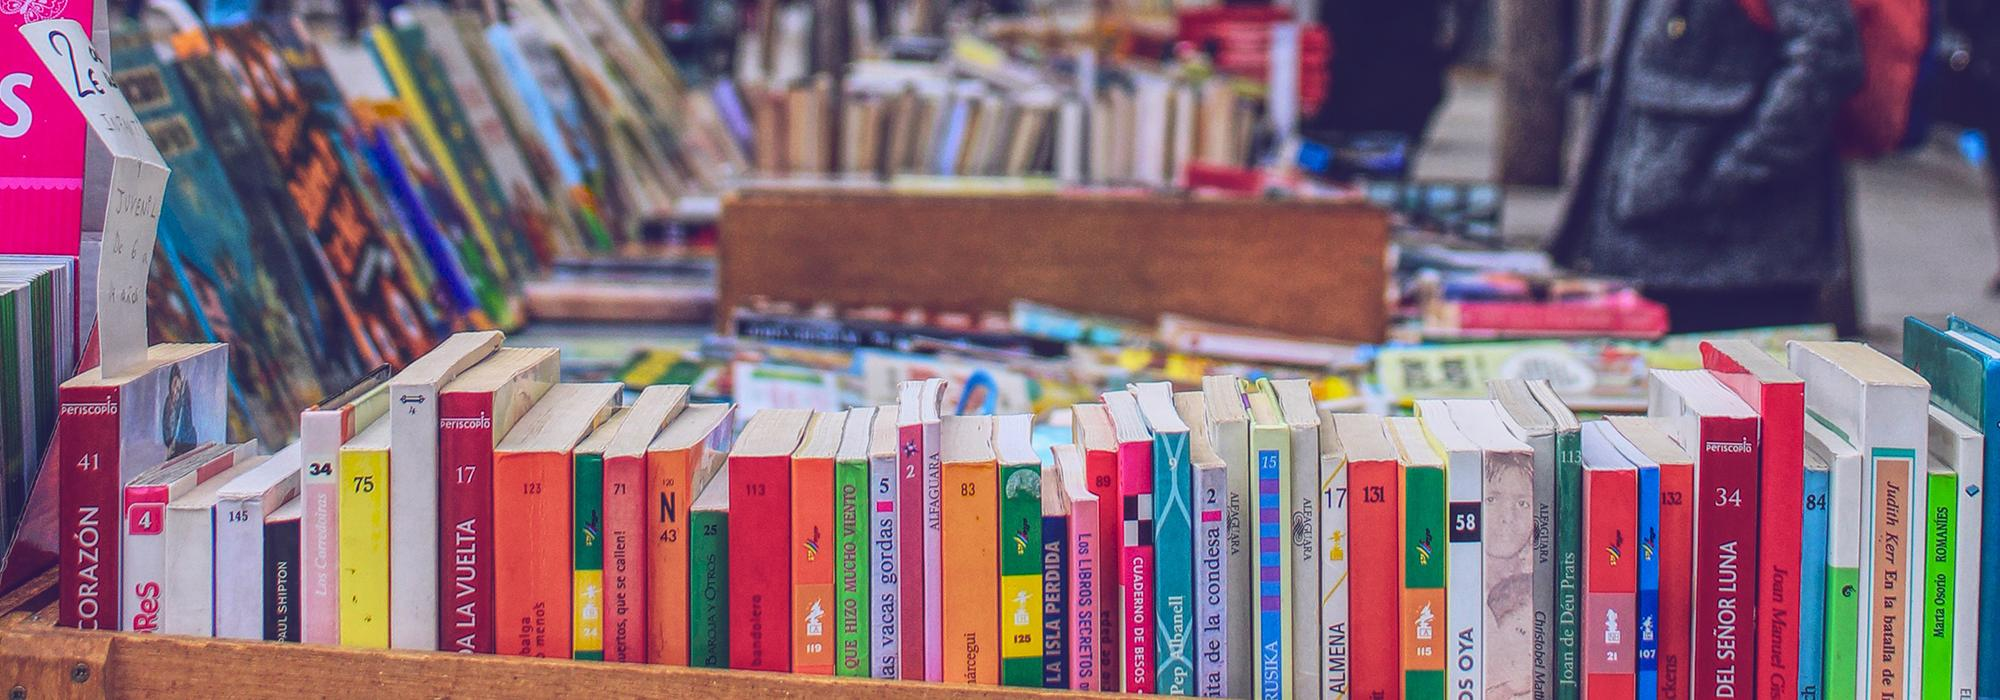 Second-hand bookstall in Madrid - Photo: Leigh Cooper on Unsplash - https://unsplash.com/@leigh_cooper